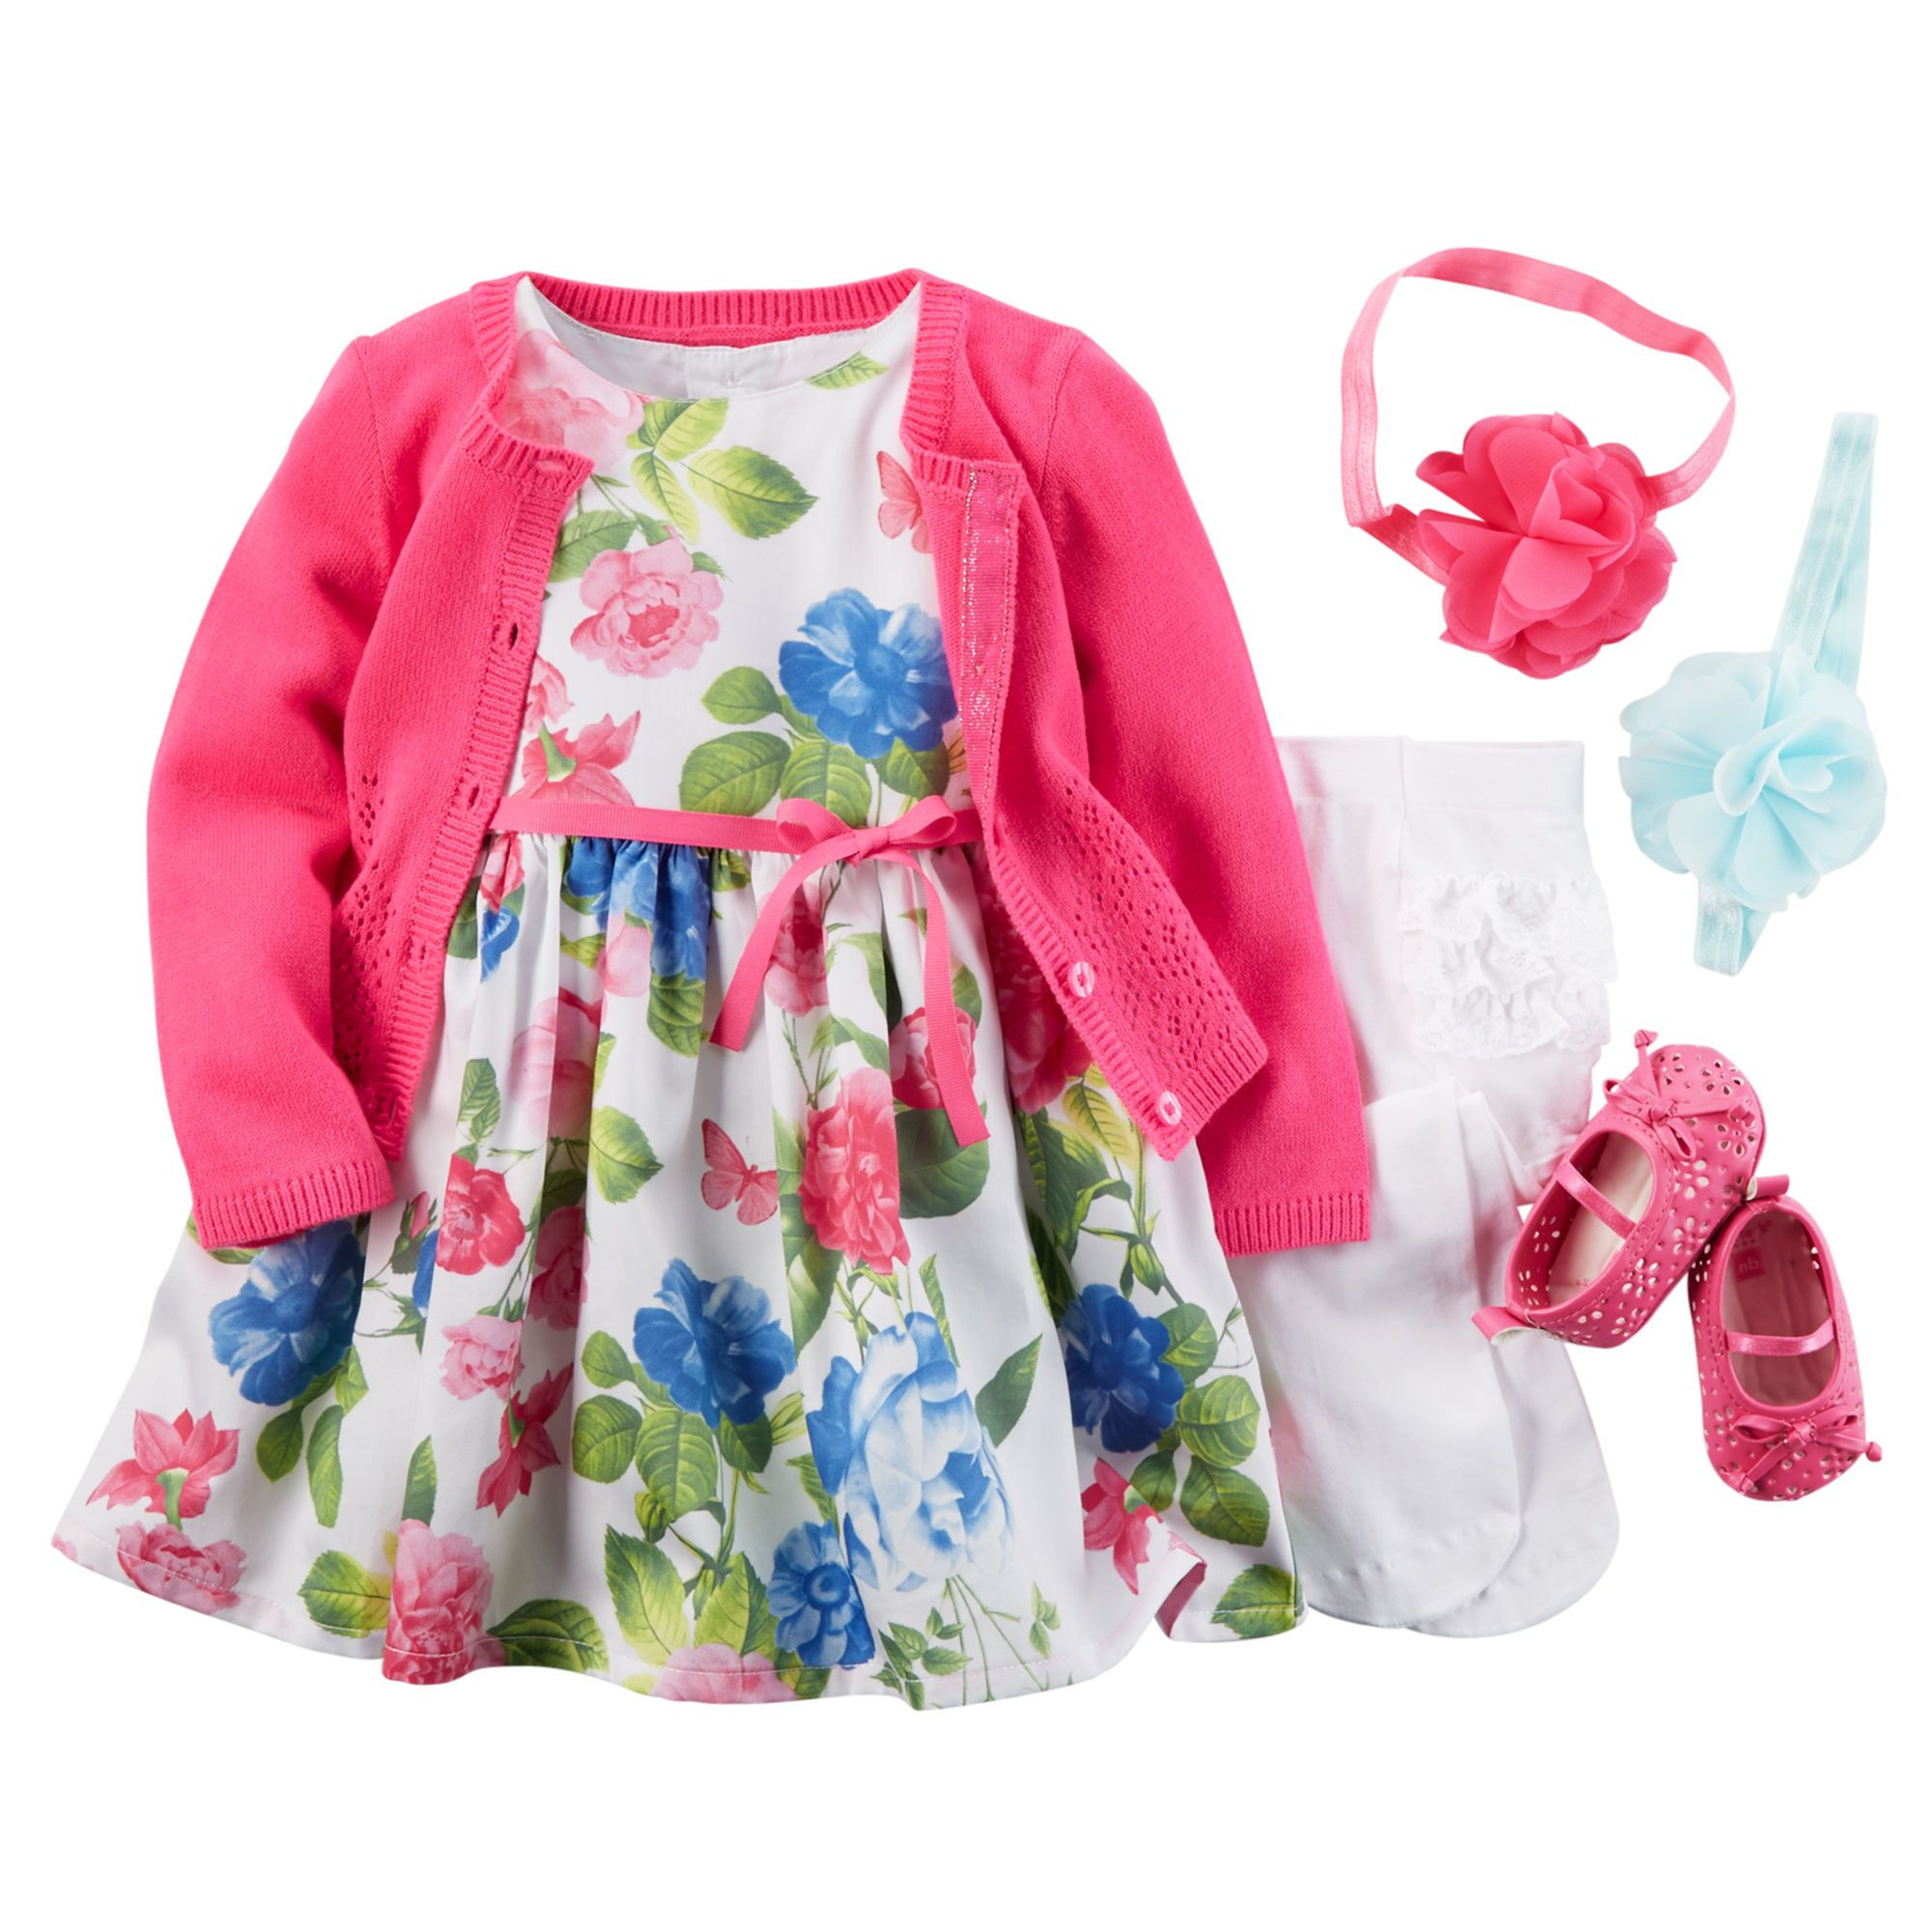 Everything you love about spring is in this cute little floral